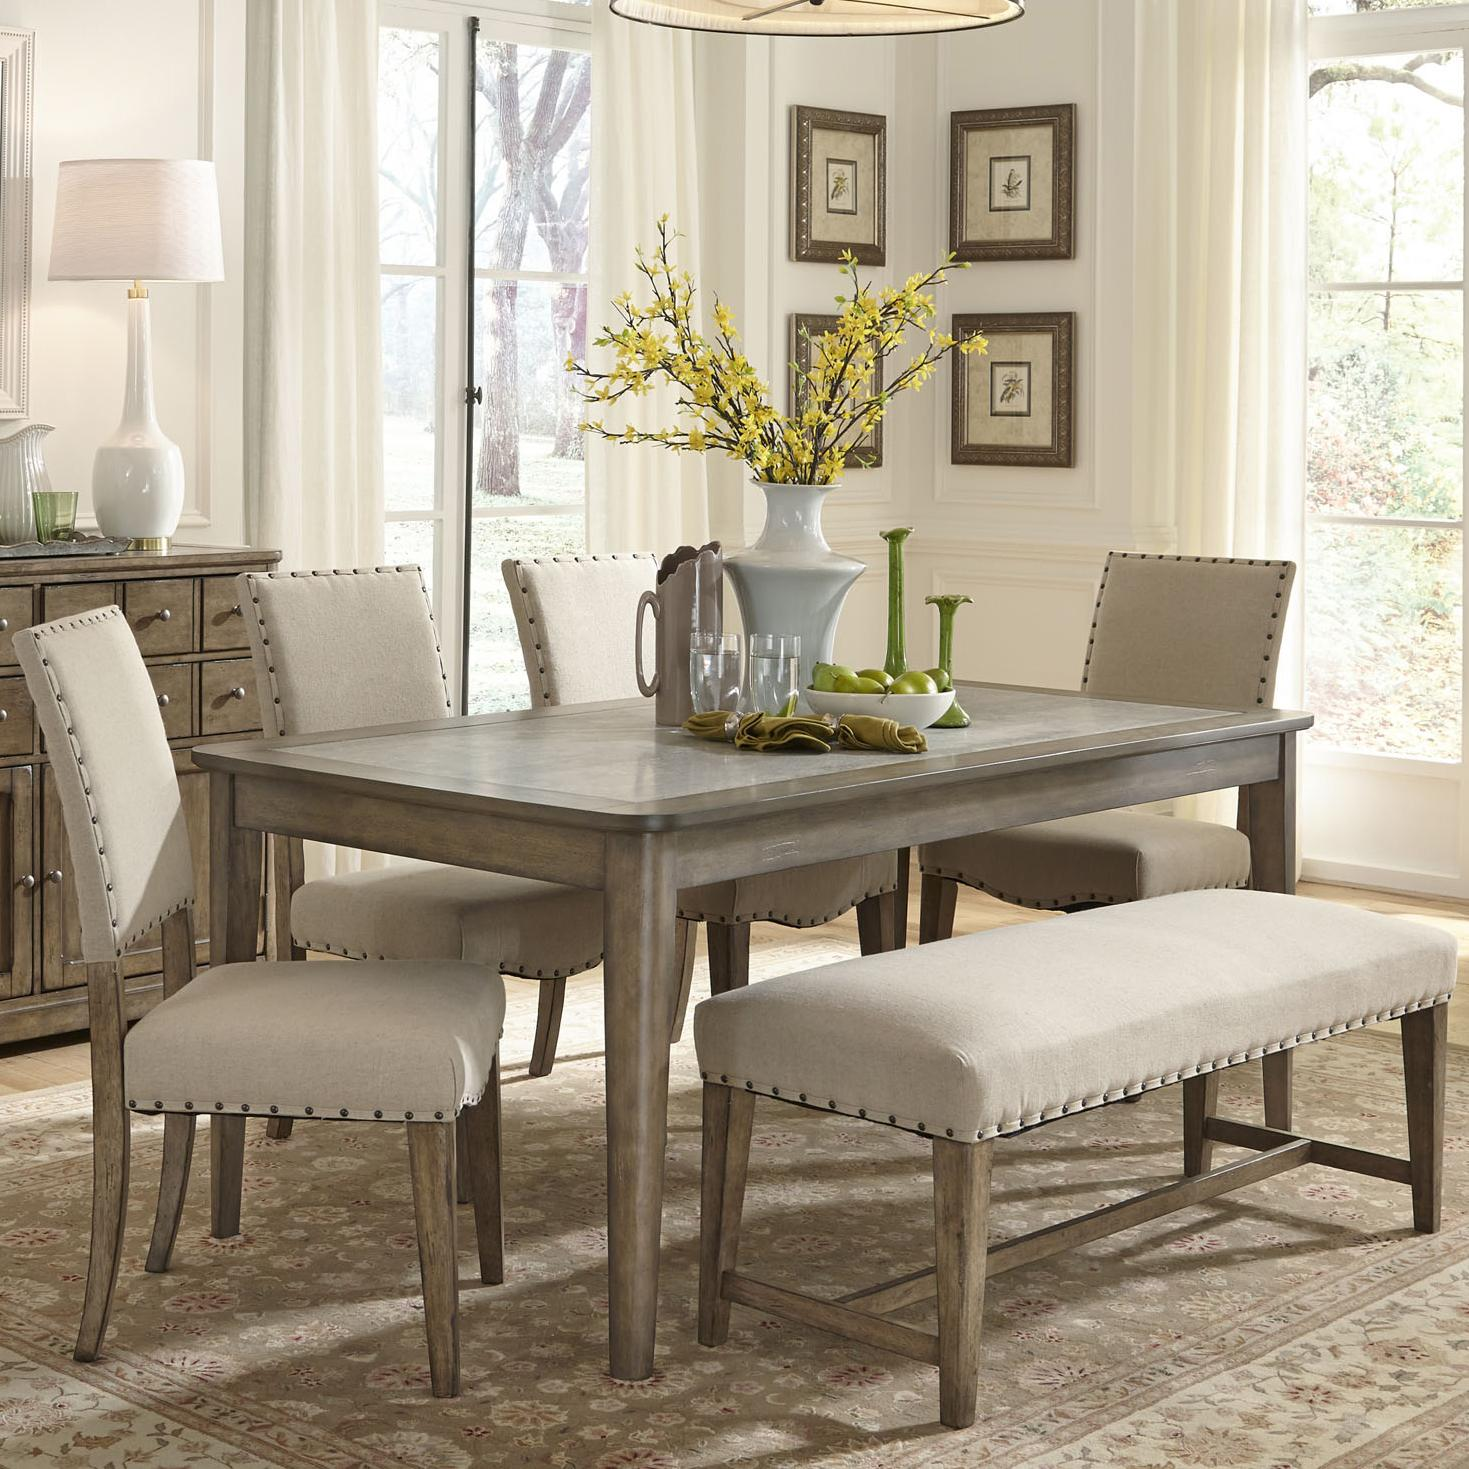 kitchen table chairs set Liberty Furniture Weatherford 6 Piece Dining Table and Chairs Set Item Number